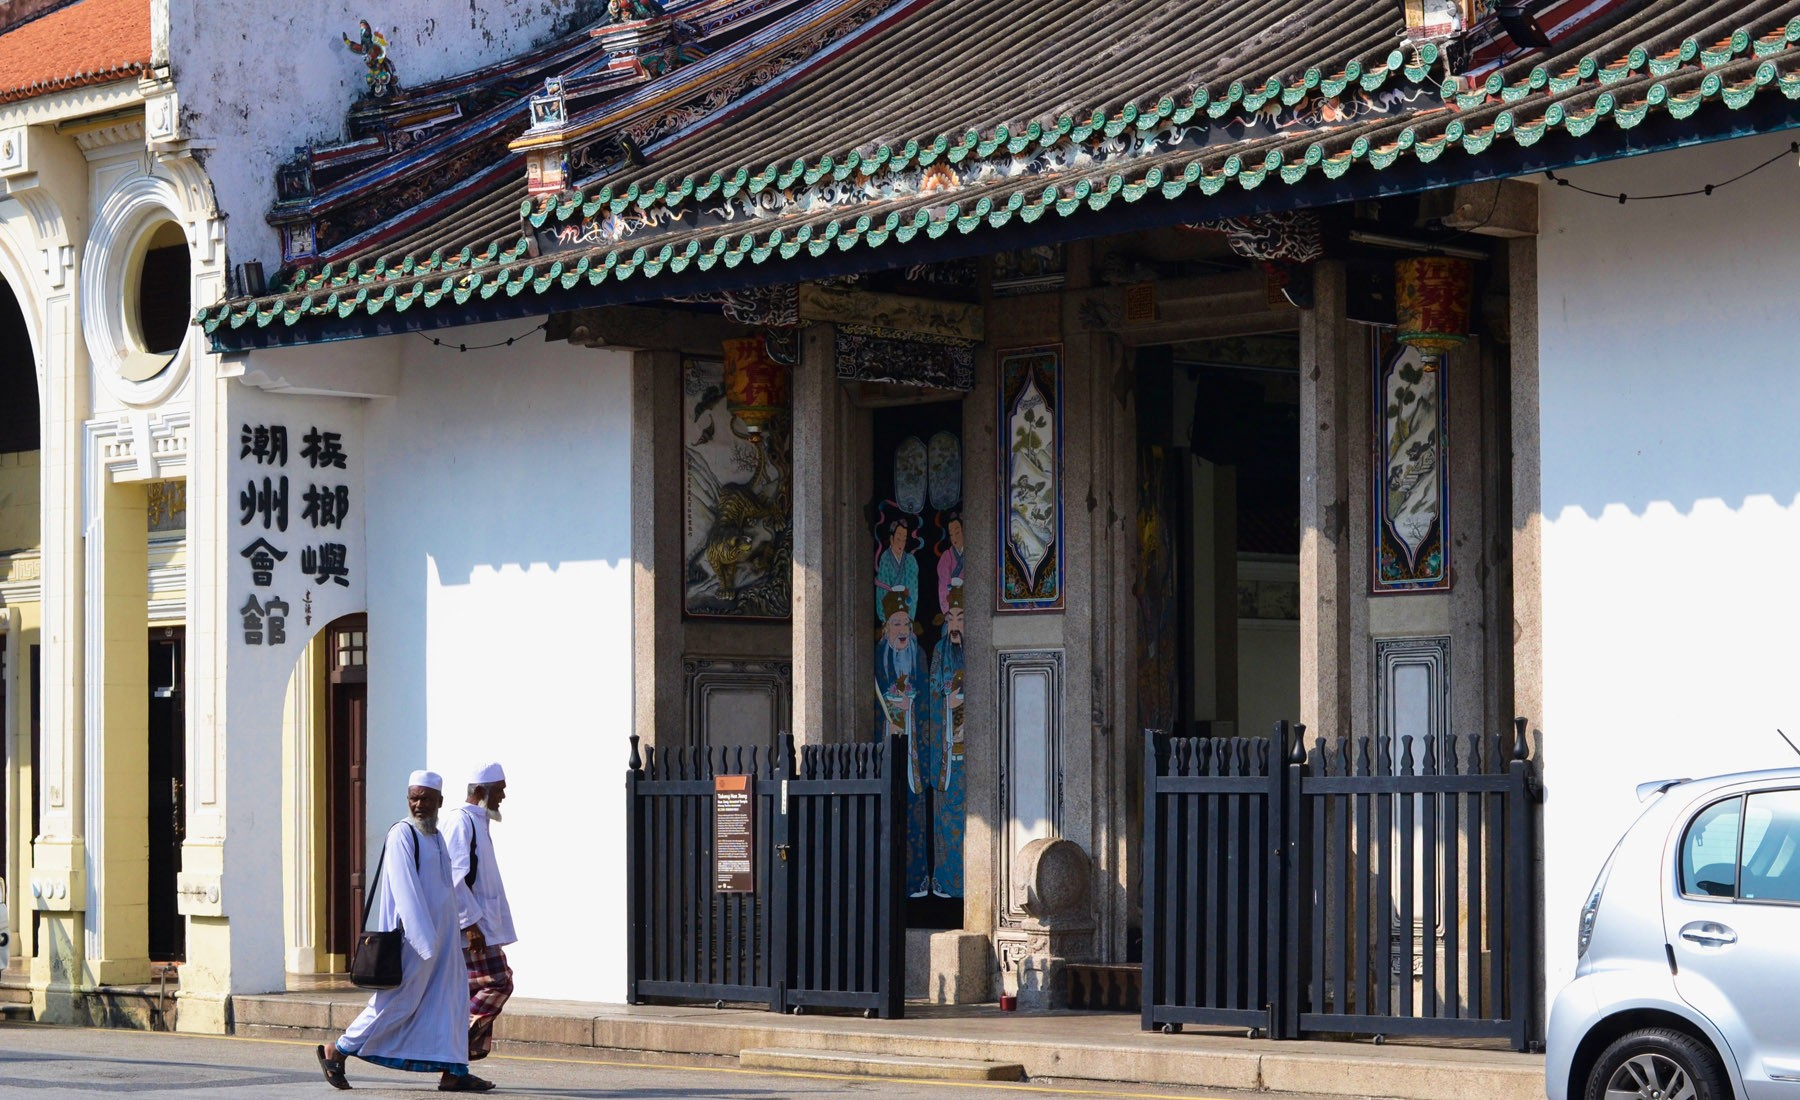 Penang is a melting pot of cultural diversity. It's also a city that will leave you melting.